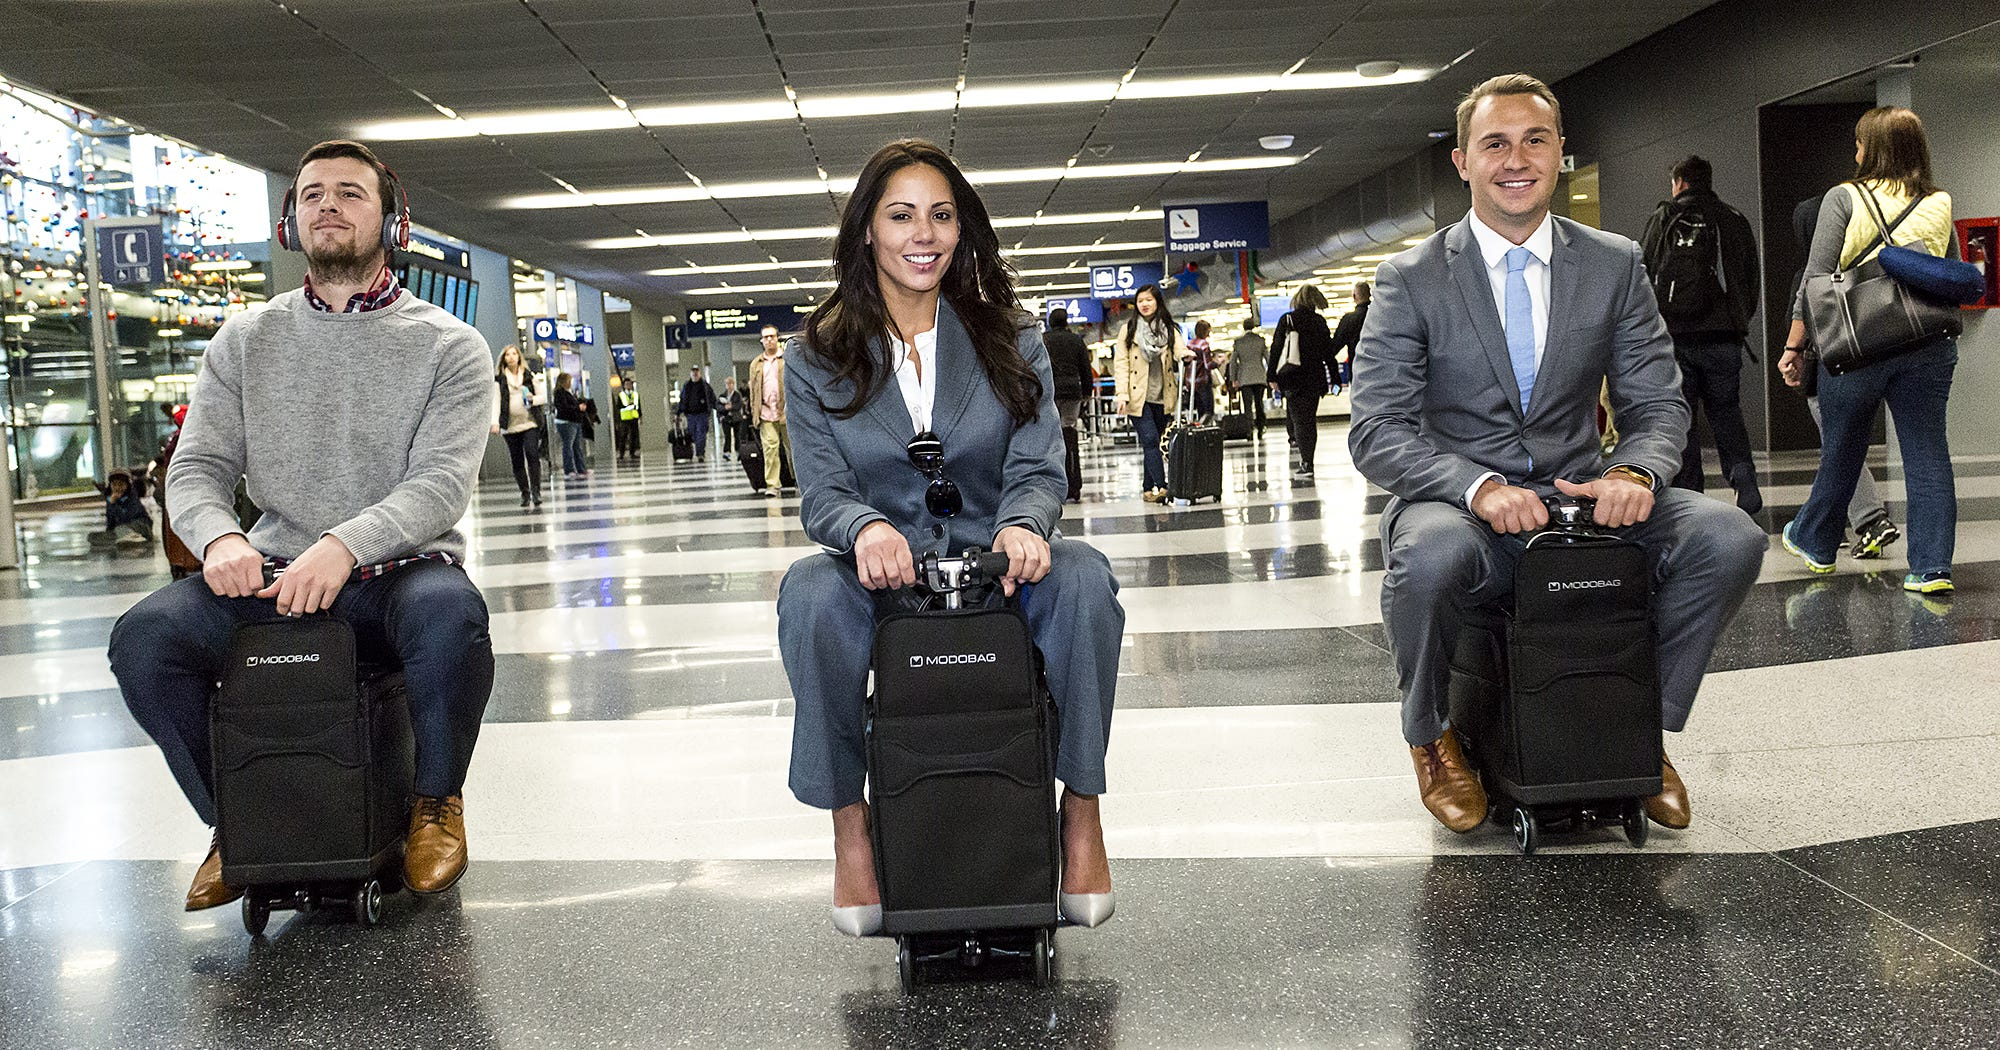 Now There's Motorized Luggage You Can Ride Around The Airport